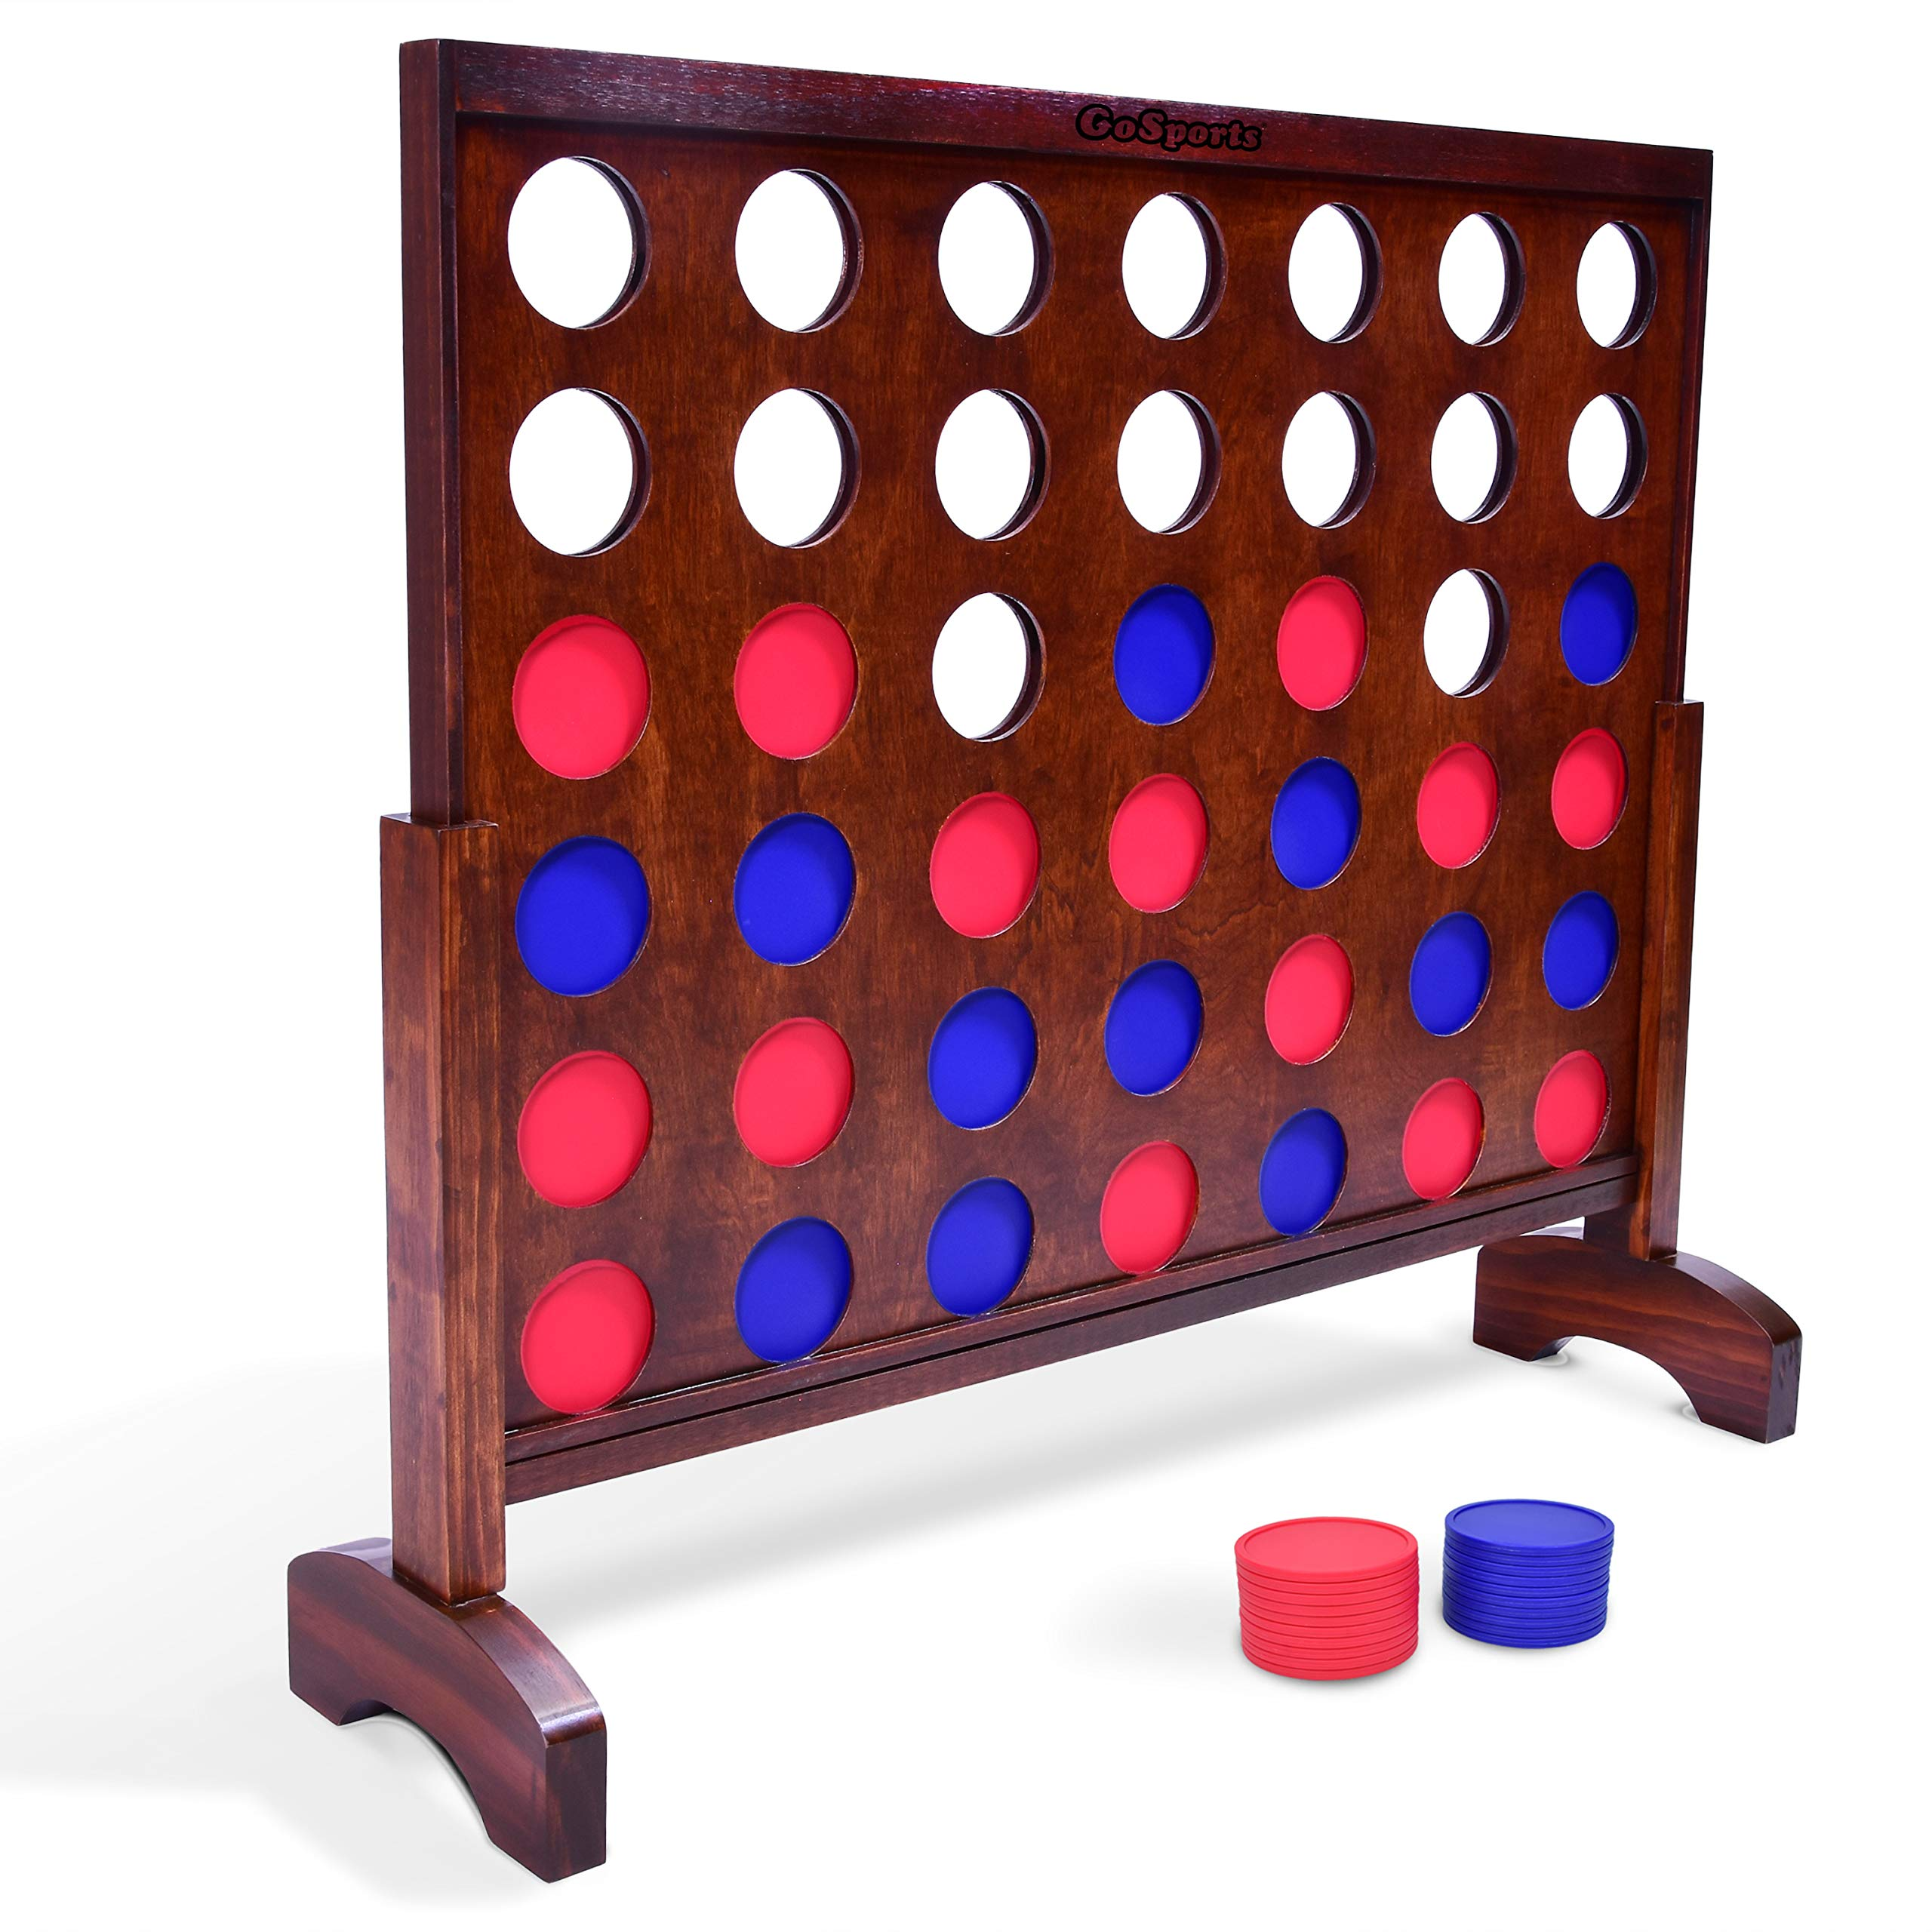 GoSports Giant Wooden 4 in a Row Game | Choose Between Classic White or Dark Stain | 3 Foot Width - Jumbo 4 Connect Family Fun with Coins, Case and Rules